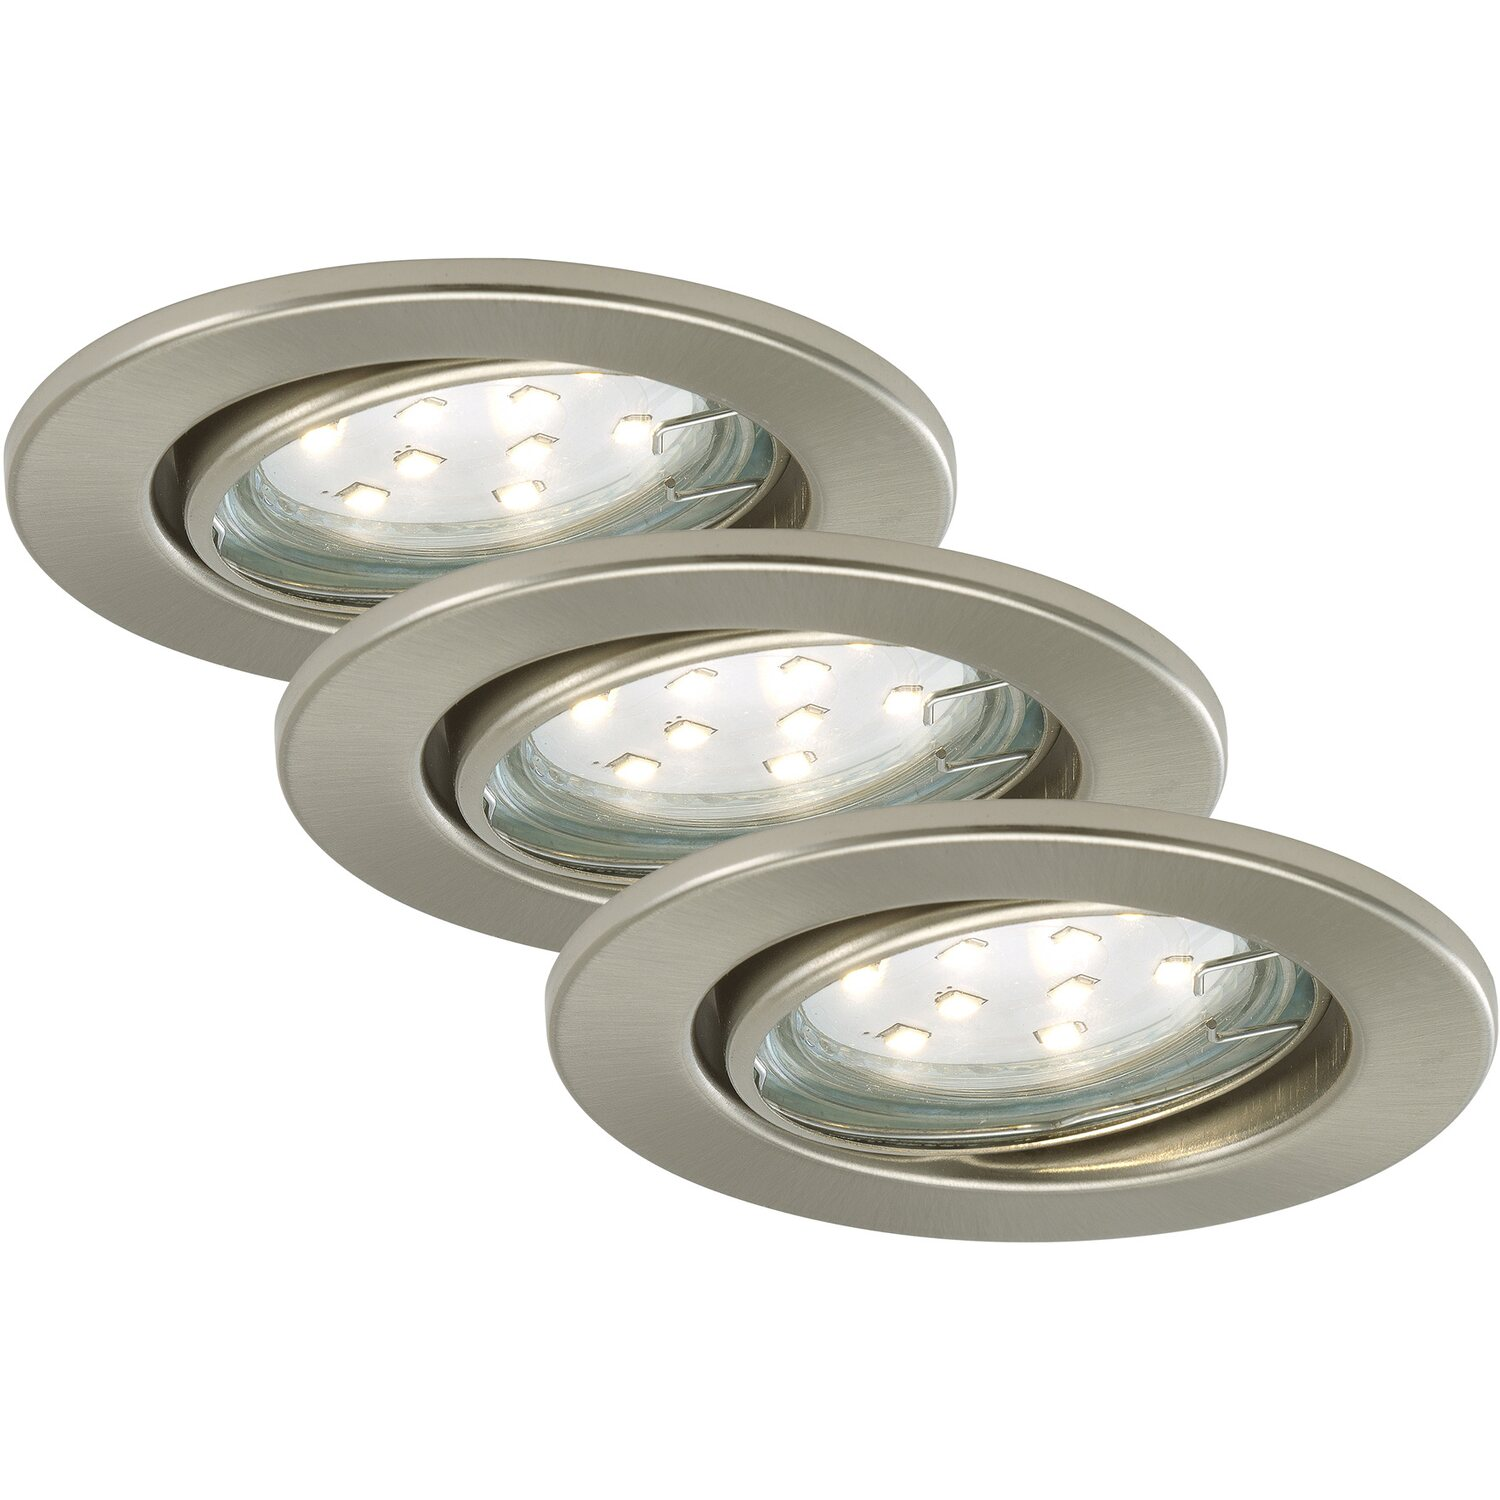 Set faretti ad incasso led 3 pz nickel acquista da obi for Obi illuminazione